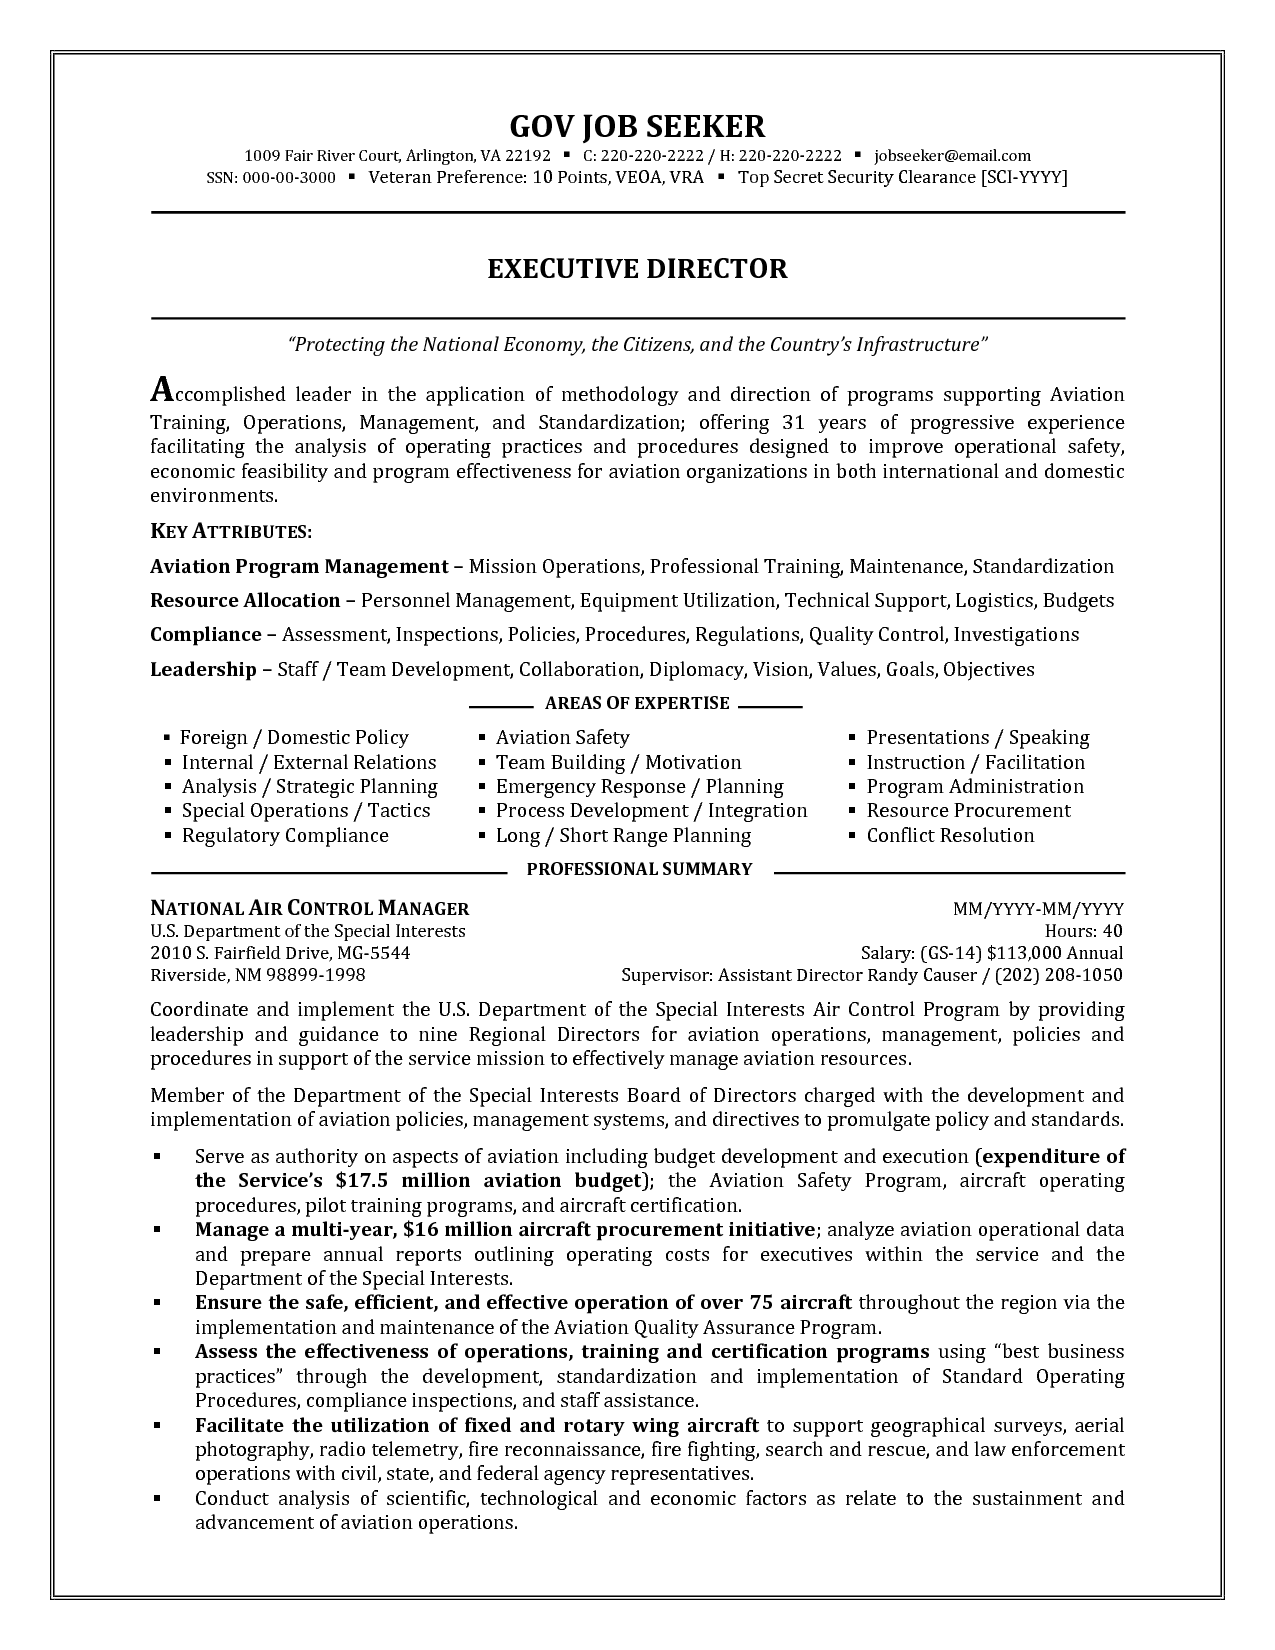 production engineer resume samples film production assistant resume template film production assistant resume template resumecareerfo